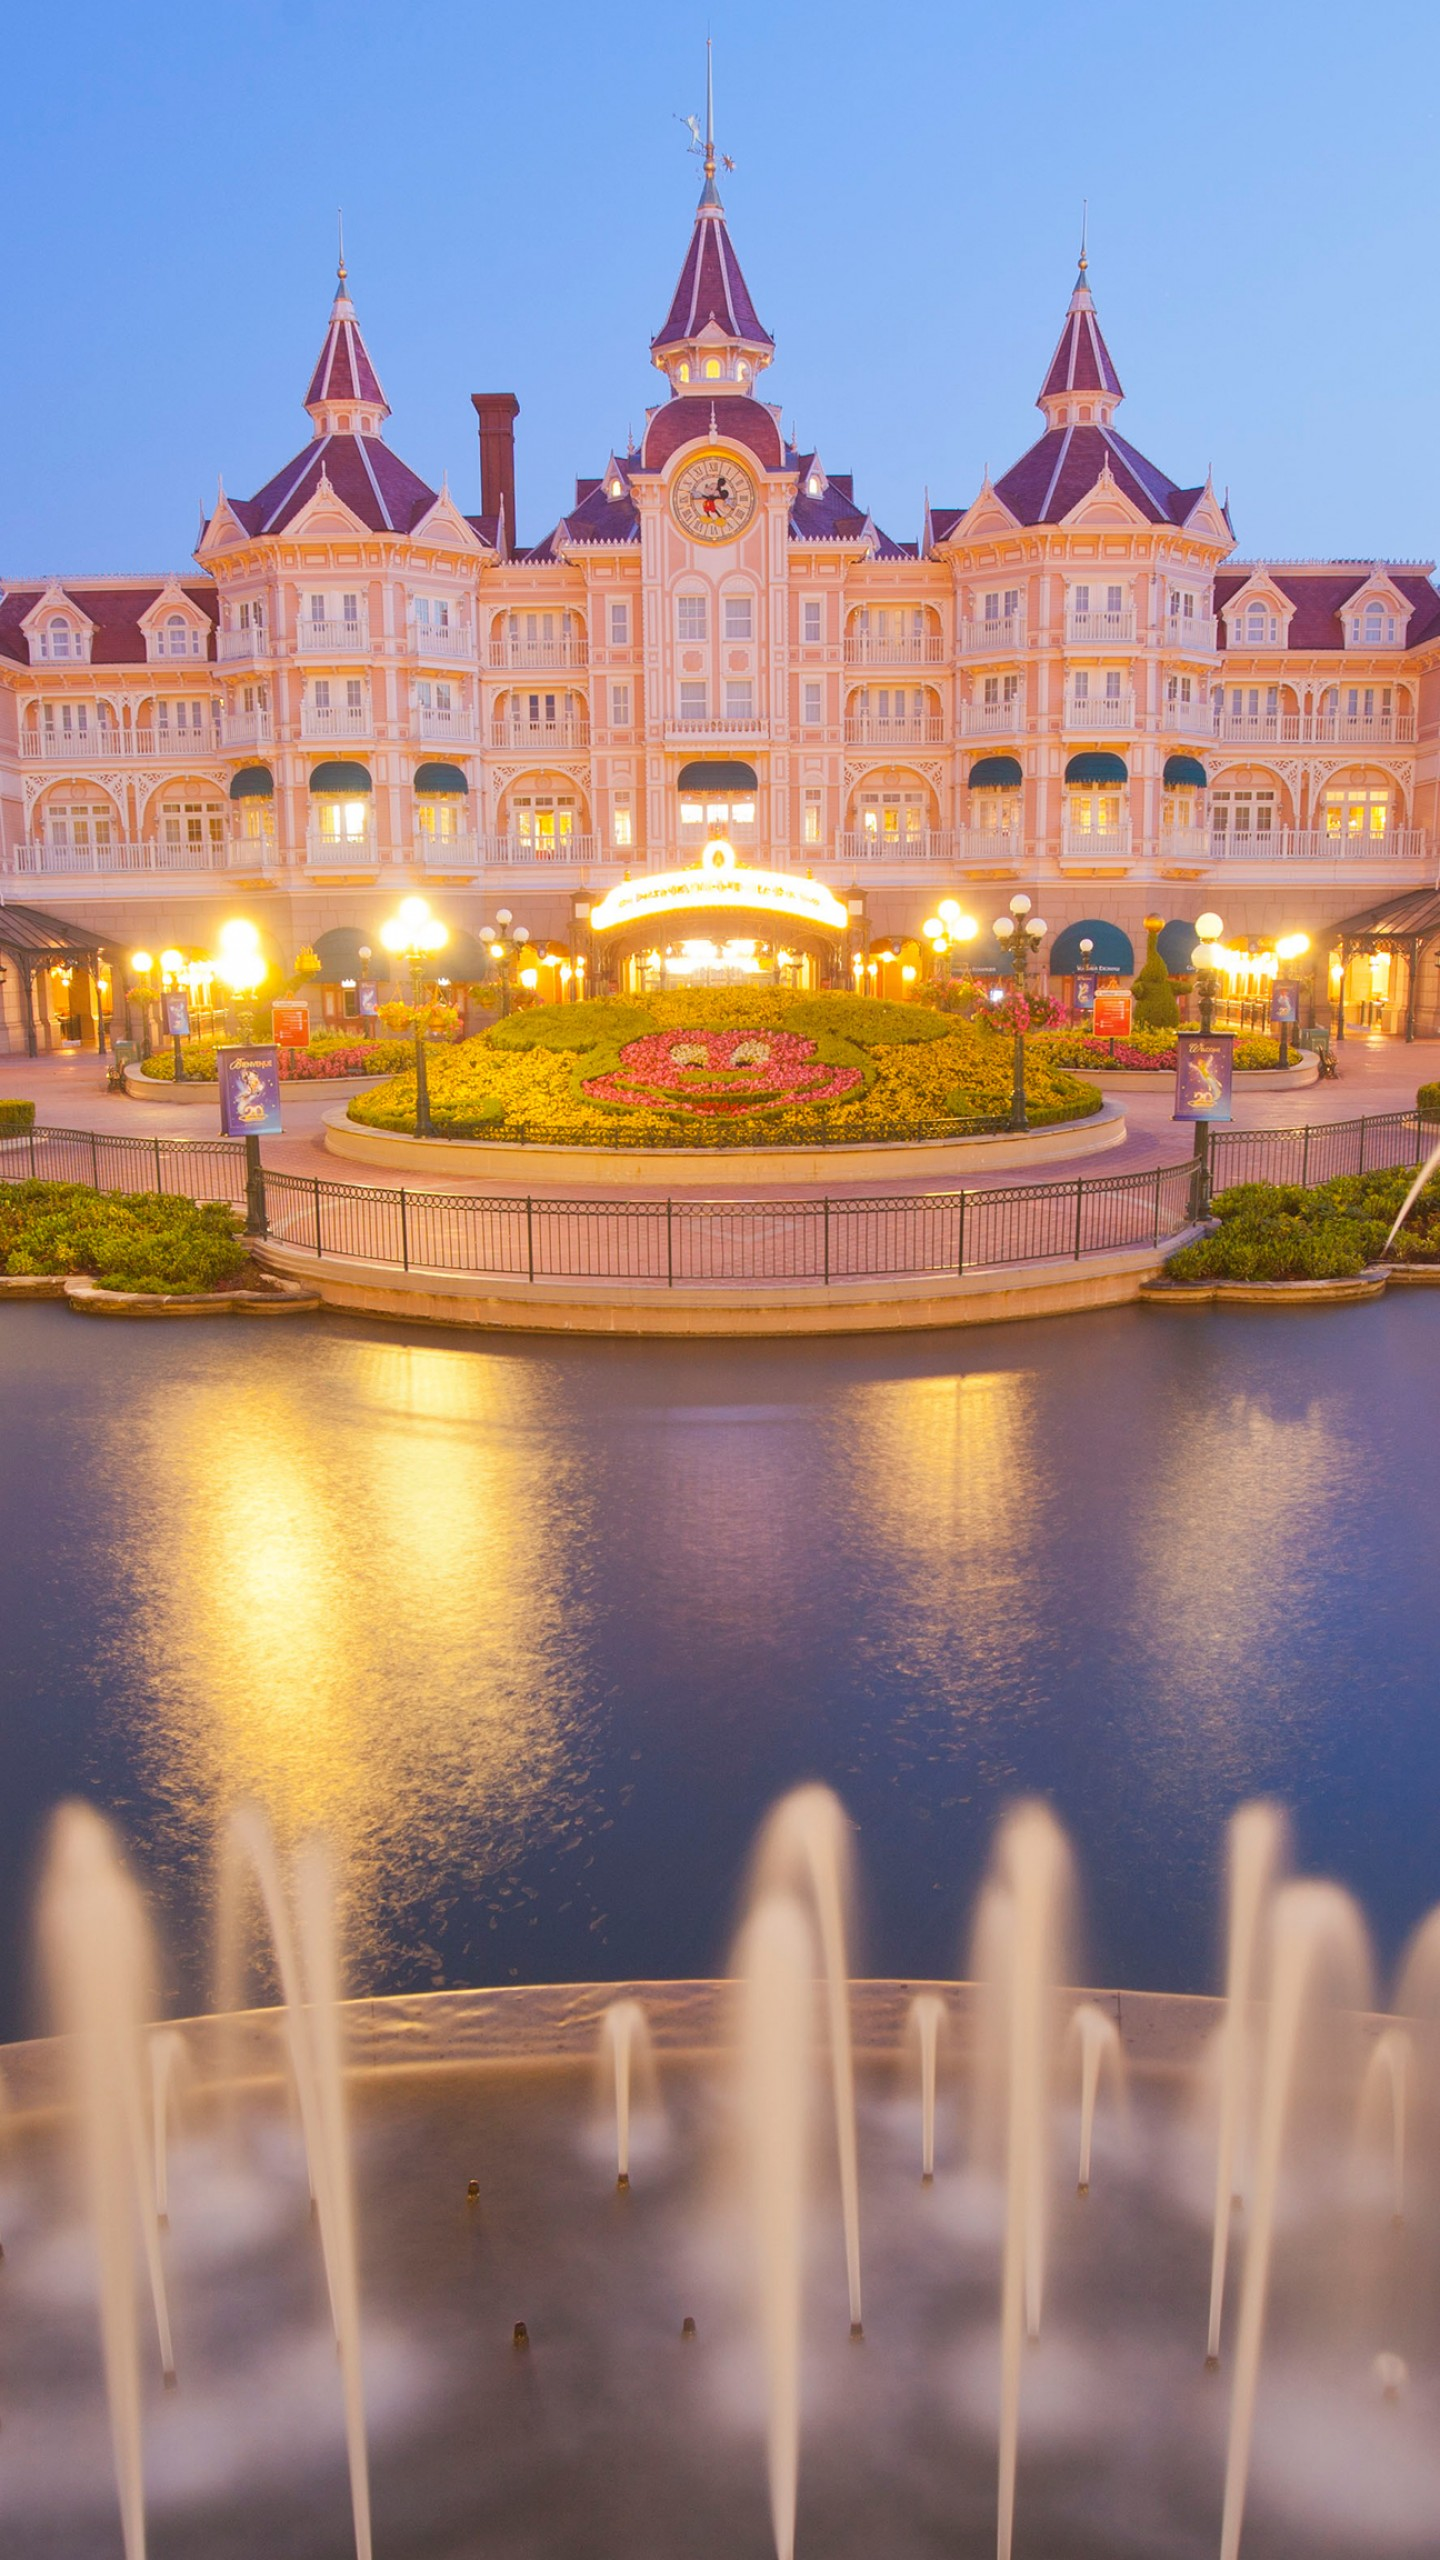 Wallpaper Disneyland Hotel Paris France Europe Fountain 4k Architecture 16461